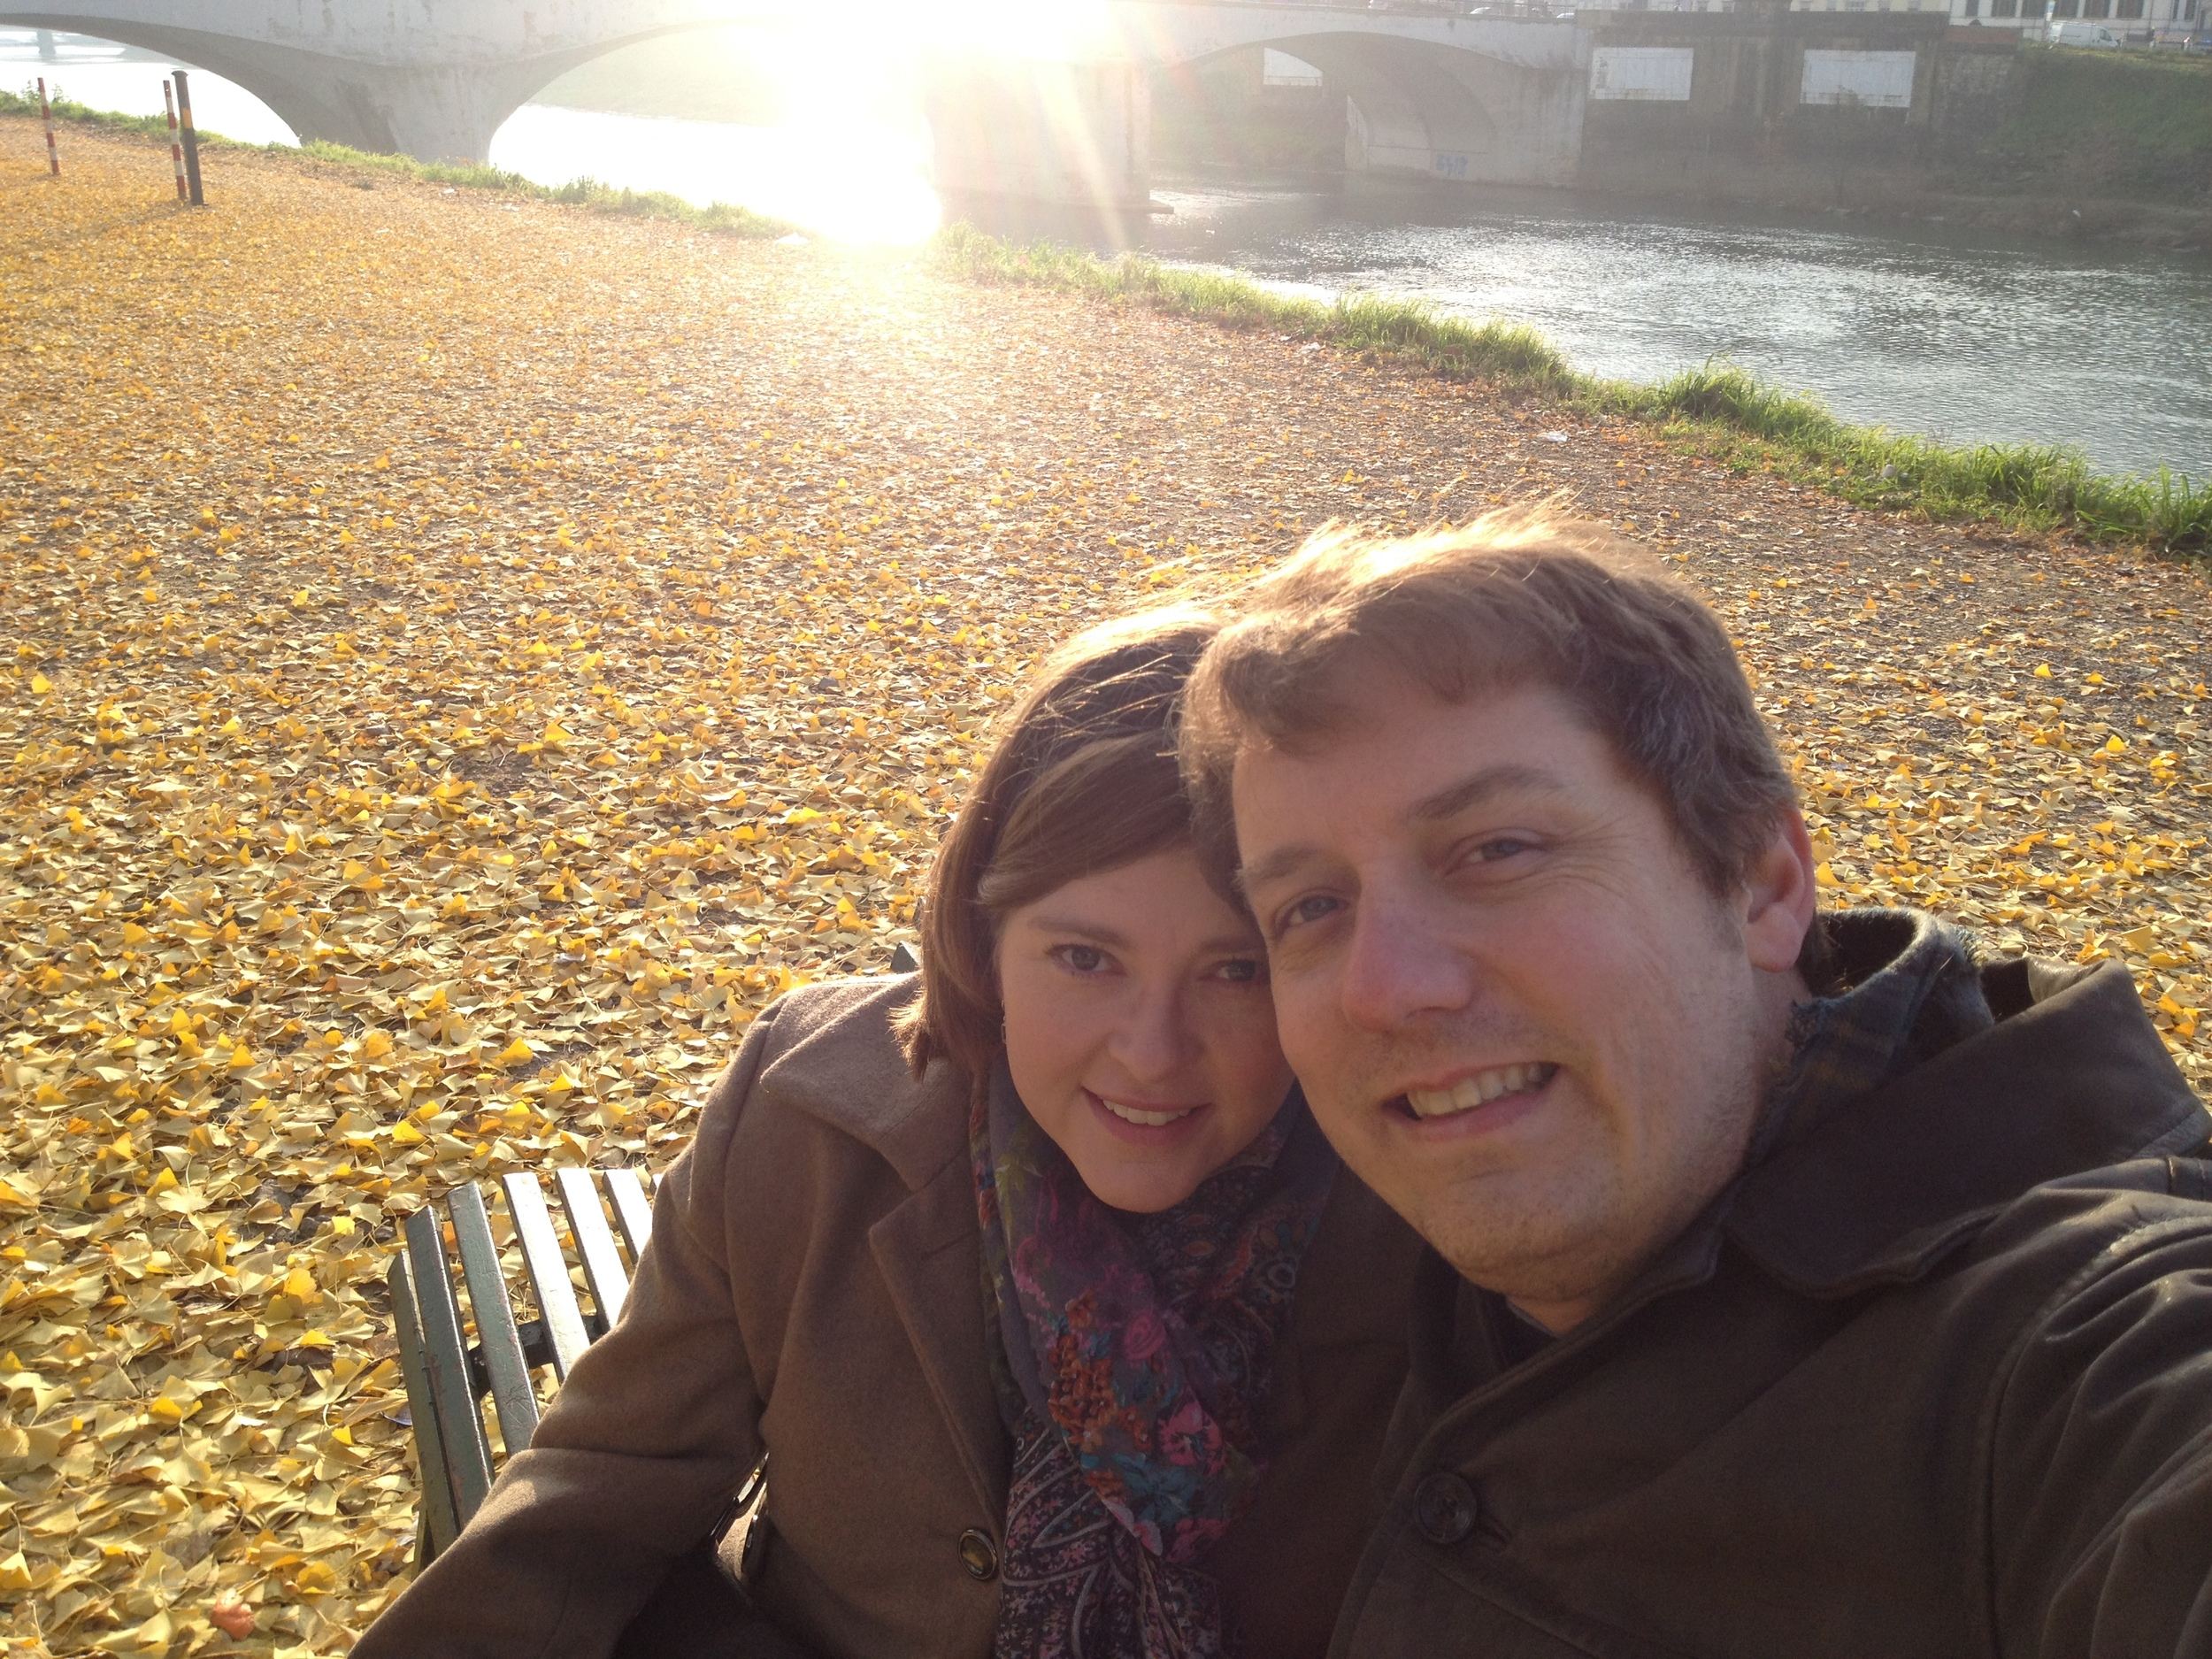 Relaxing by the Arno River